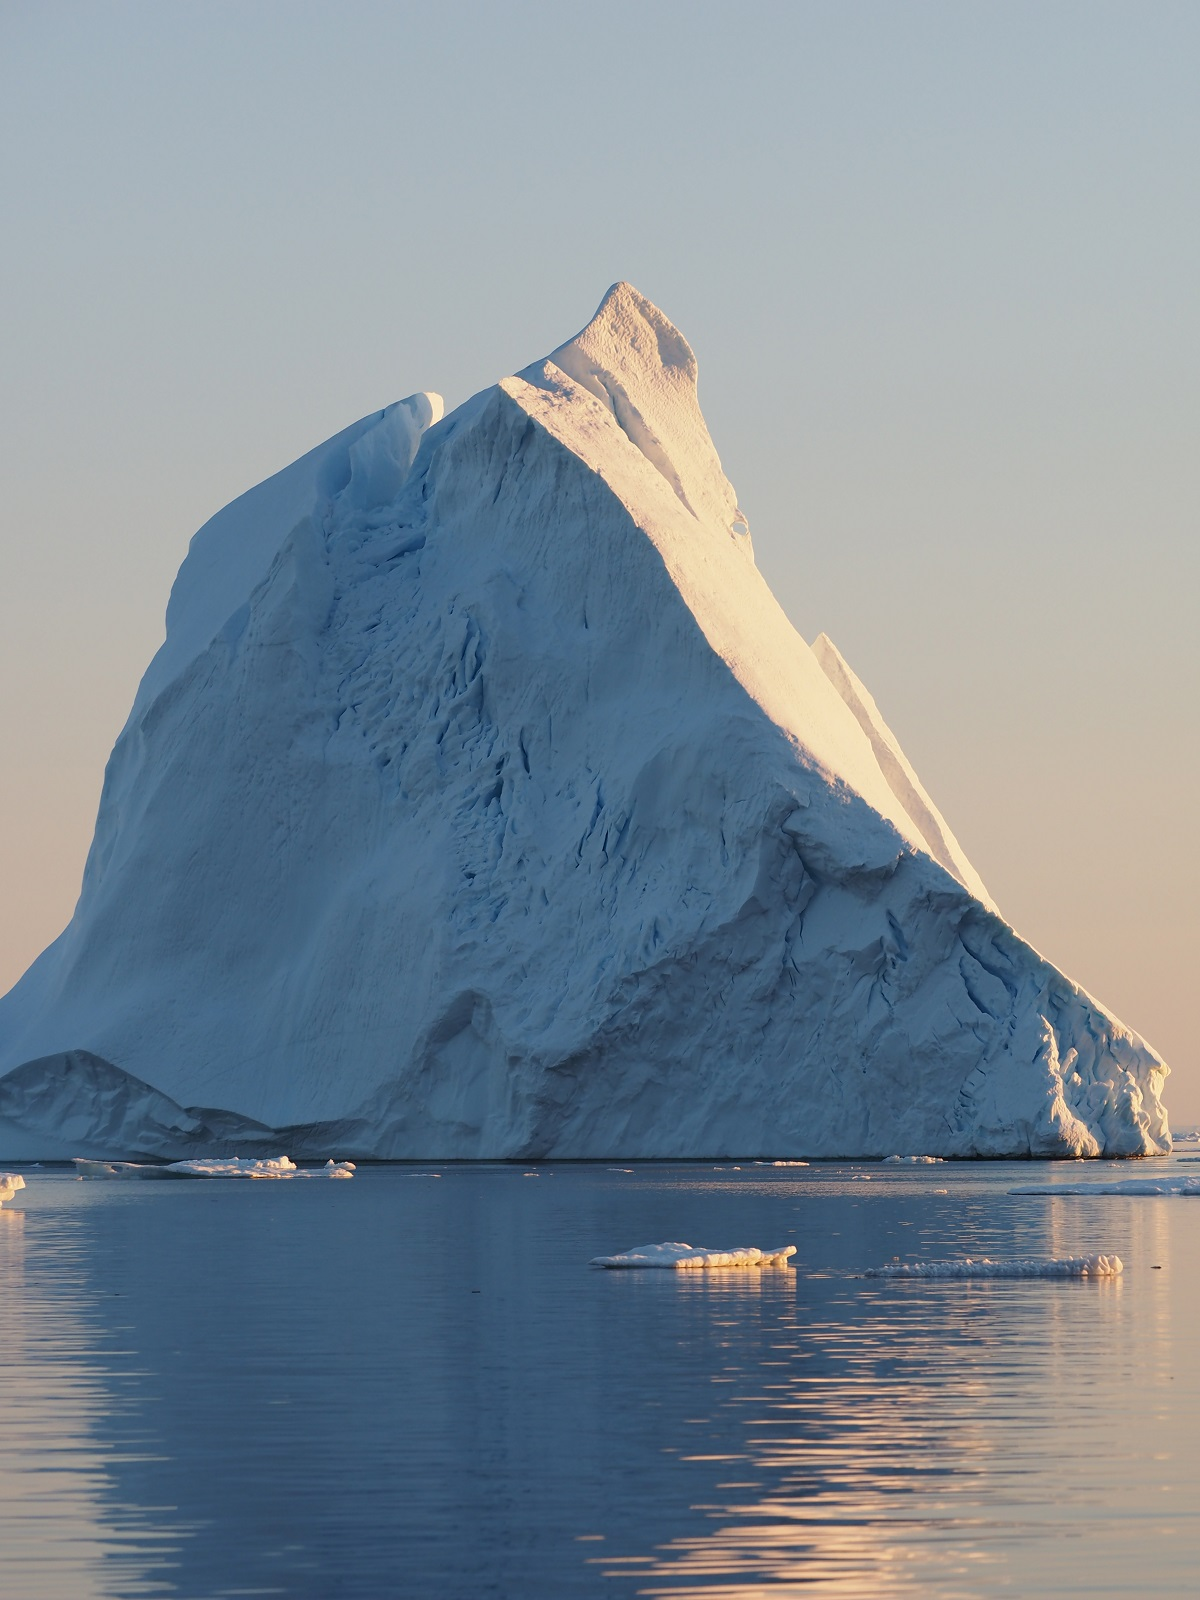 A towering iceberg in Greenland.